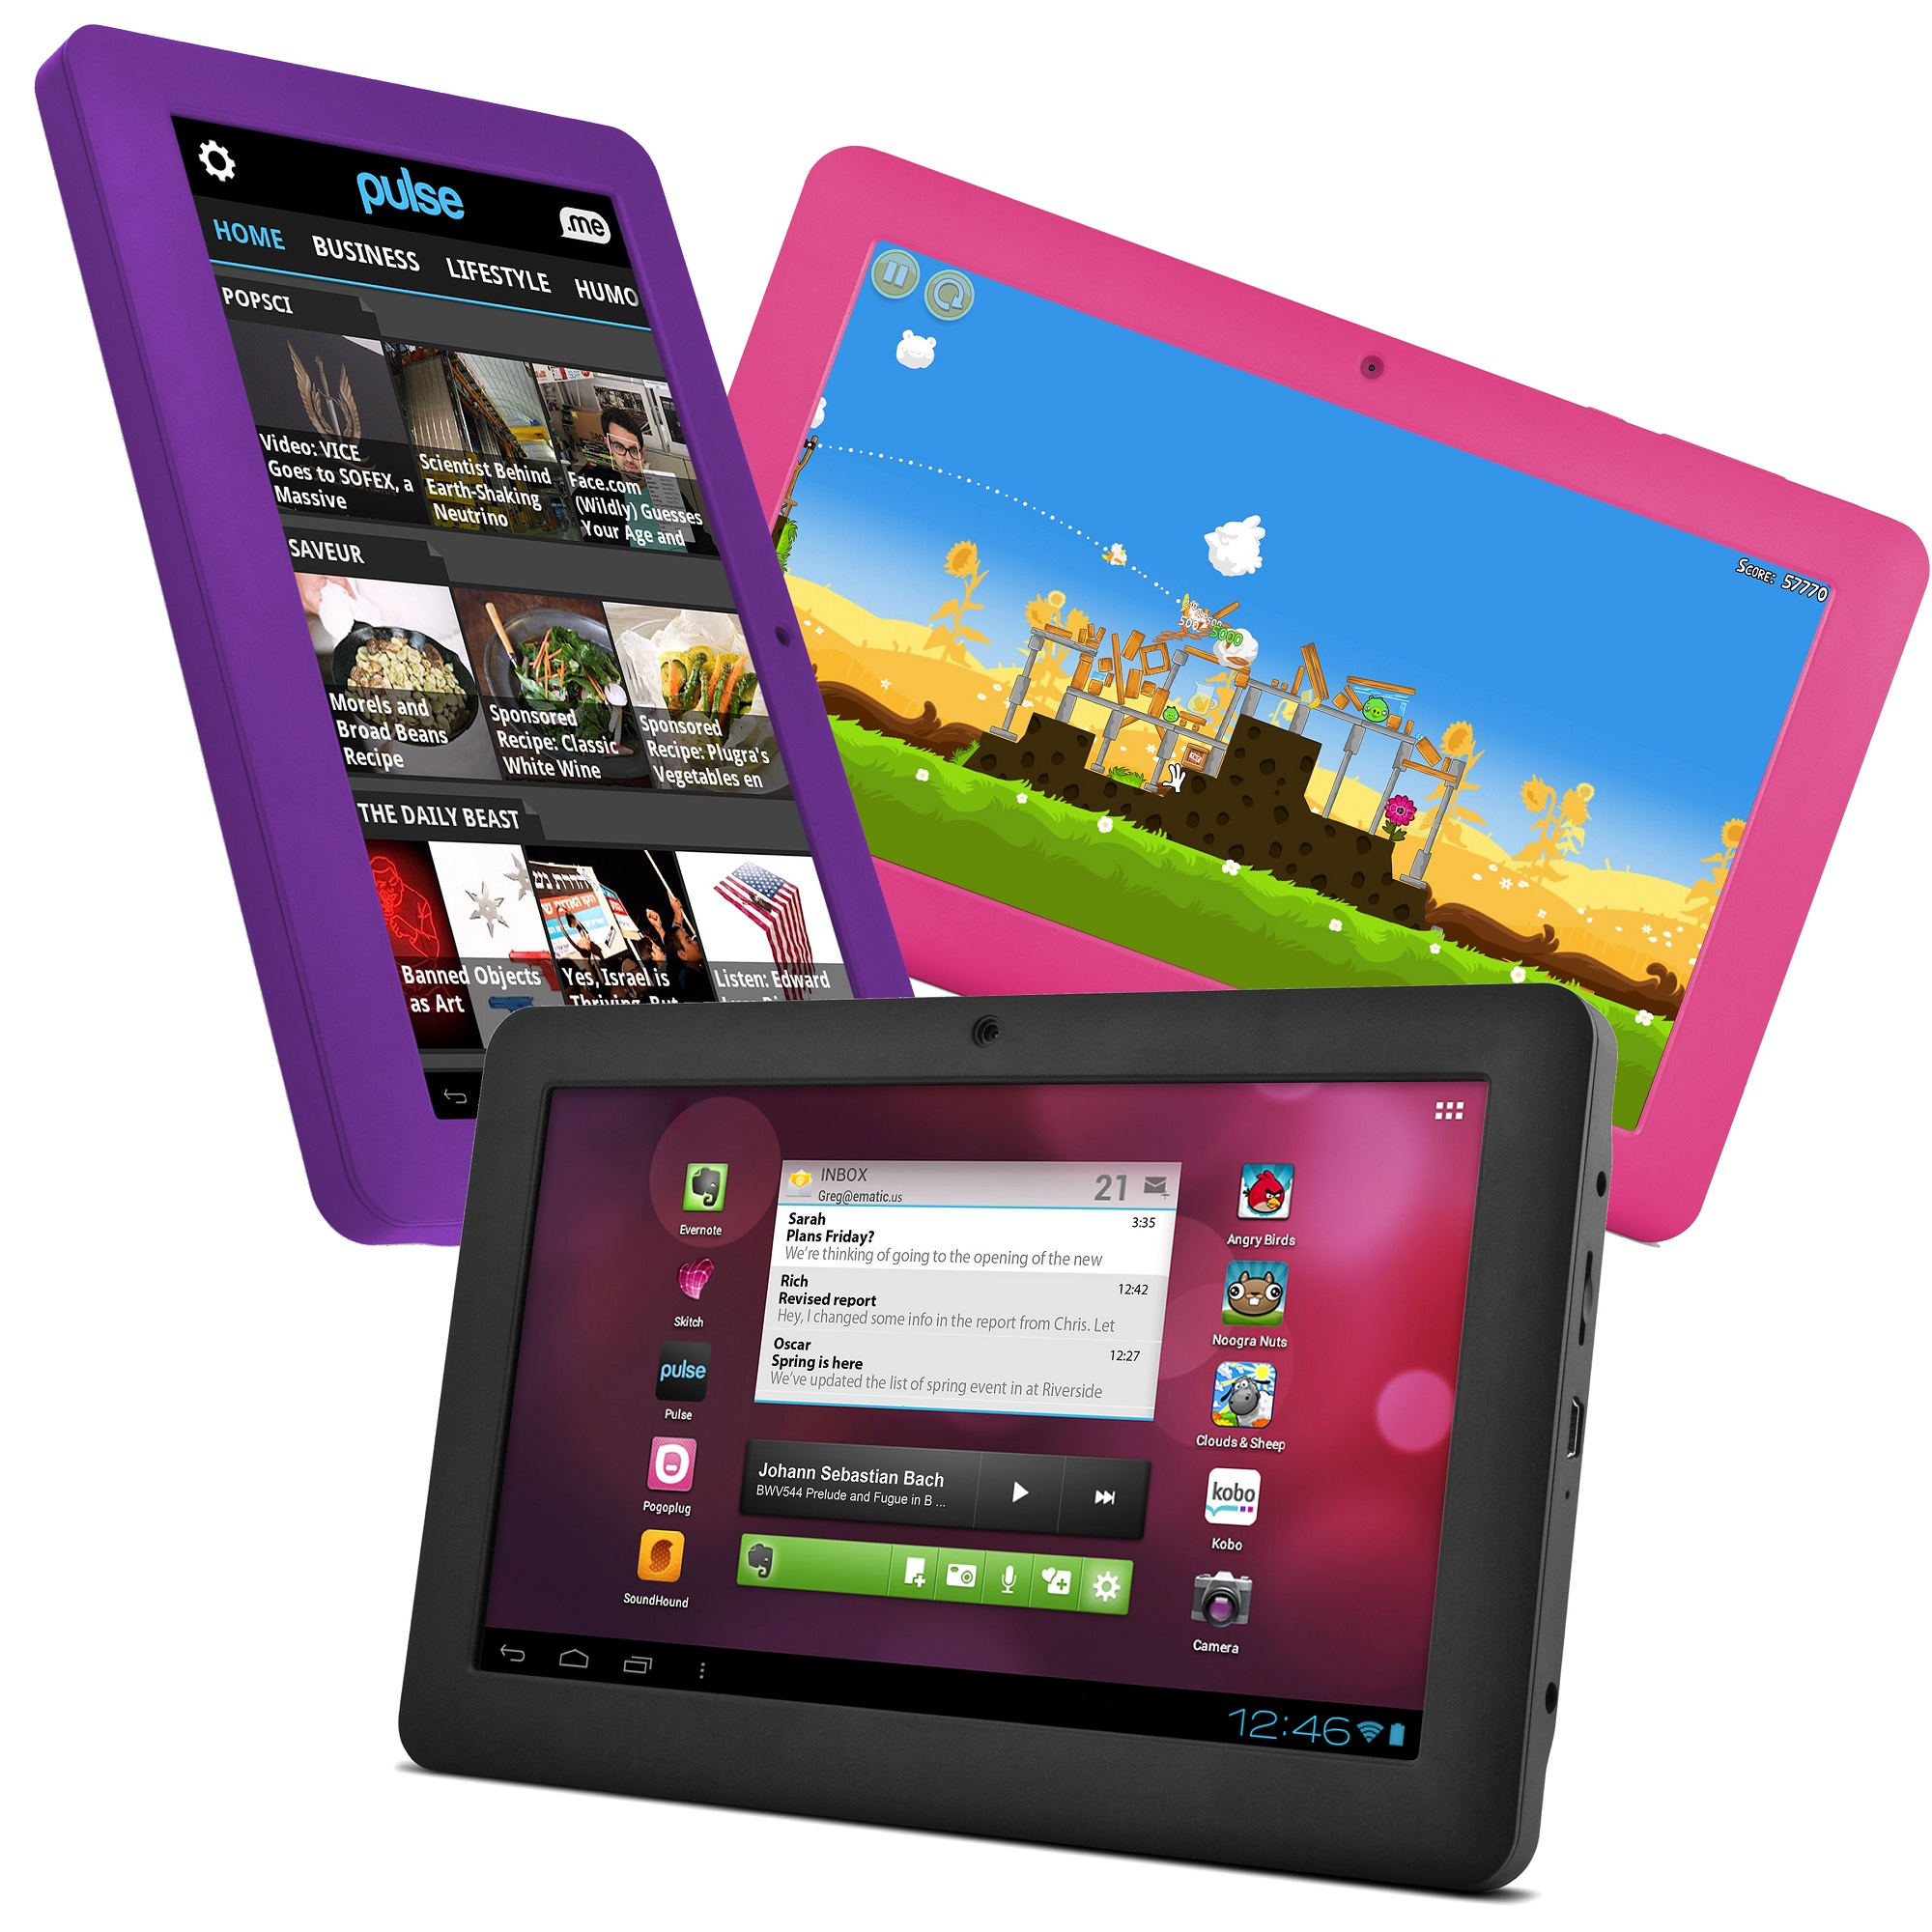 """Save 75% OFF Ematic 7"""" Pro Series Google Android 4.0 Capacitive Multi-Touch Tablet Plus Free Shipping at Ebay.com.au"""